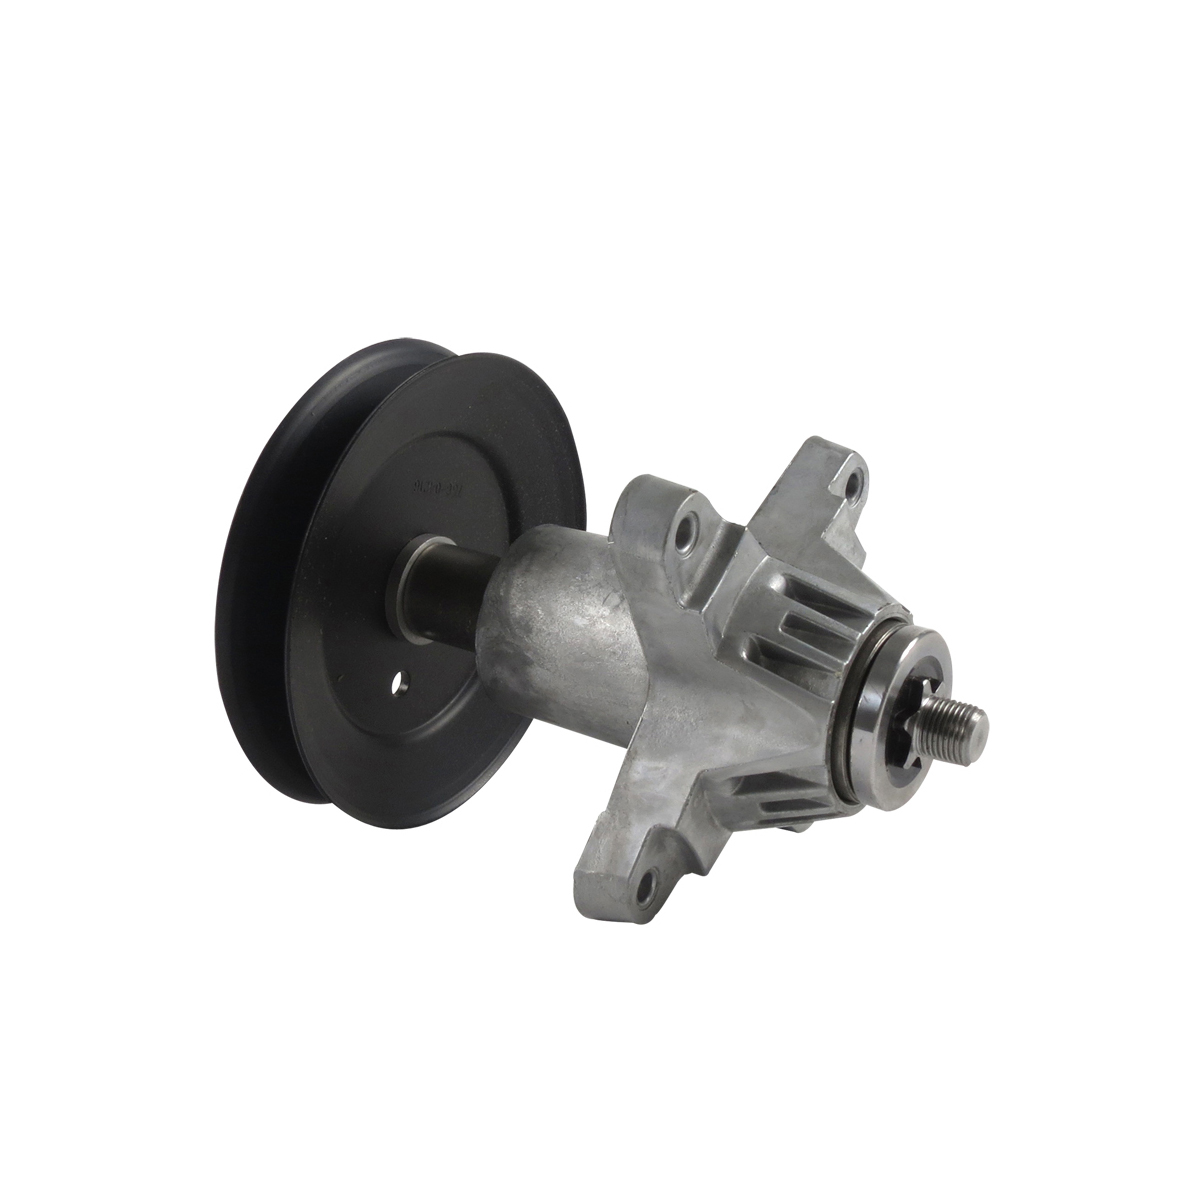 Pulley & Spindle Assembly 918-04608A